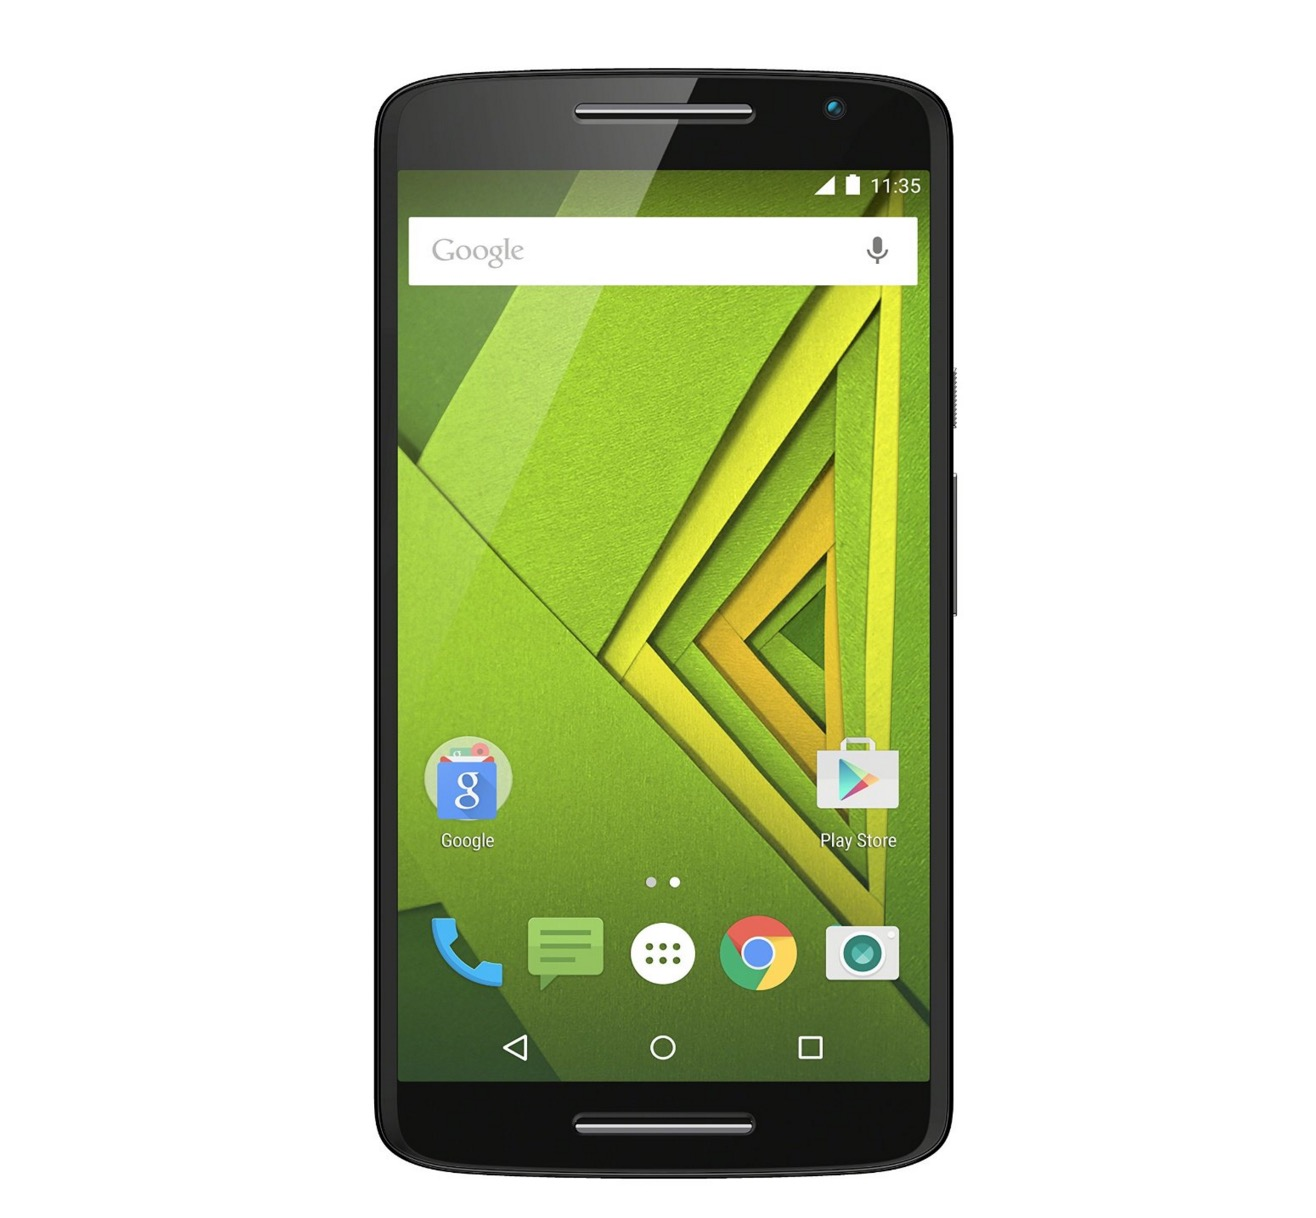 Das Motorola Moto X Play (Bild: Amazon.de).